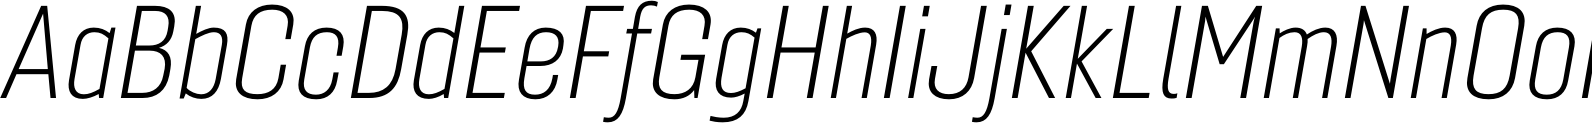 Gineso Cond Thin Italic Font